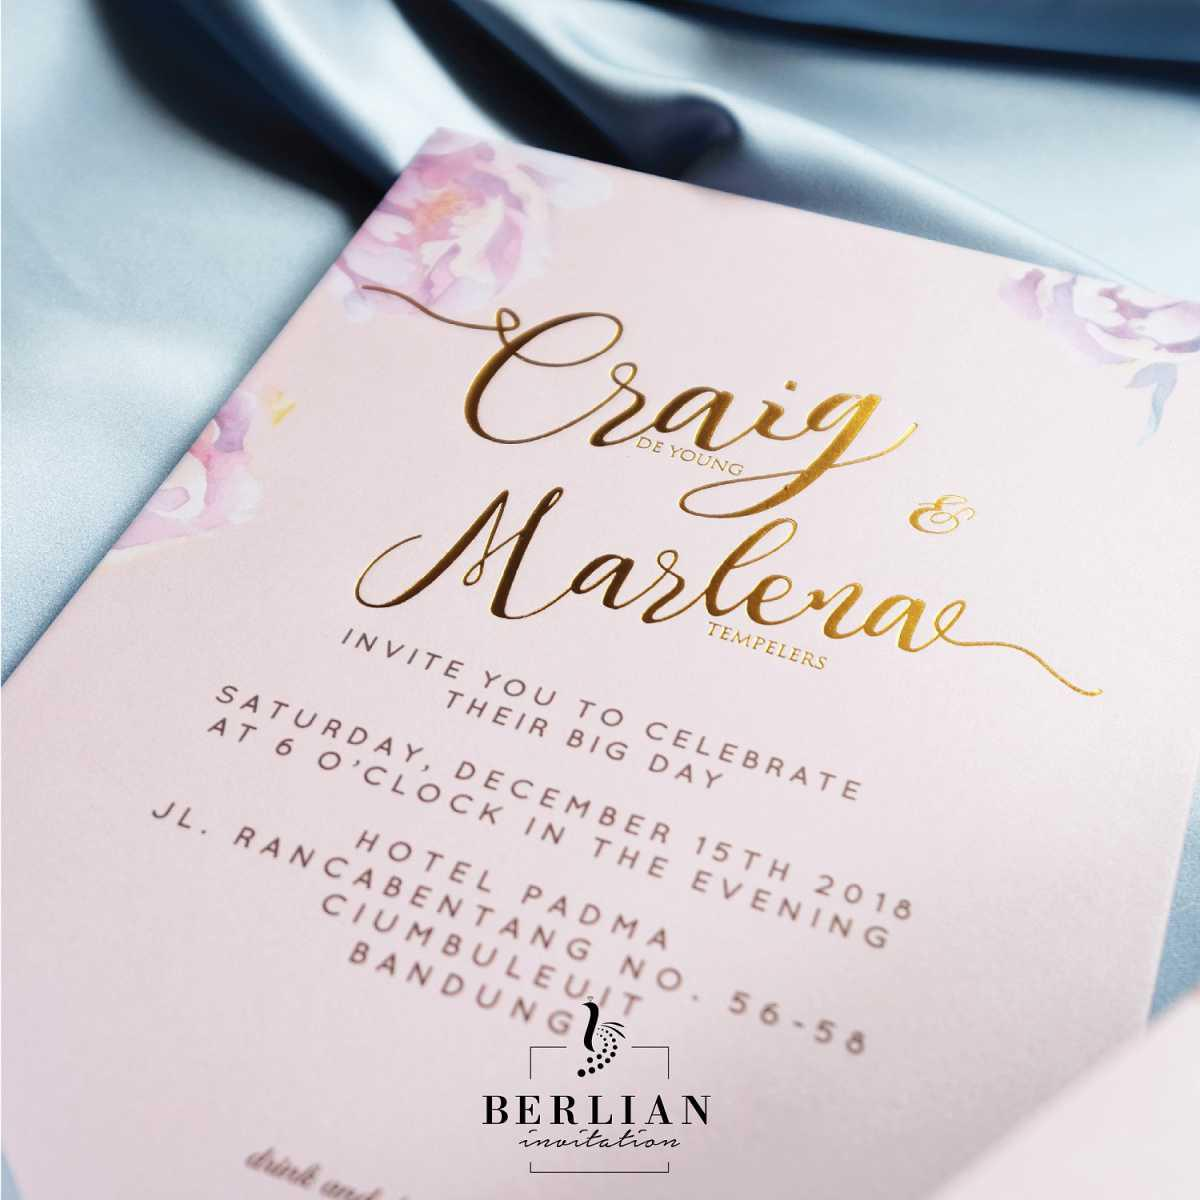 Berlian Invitation